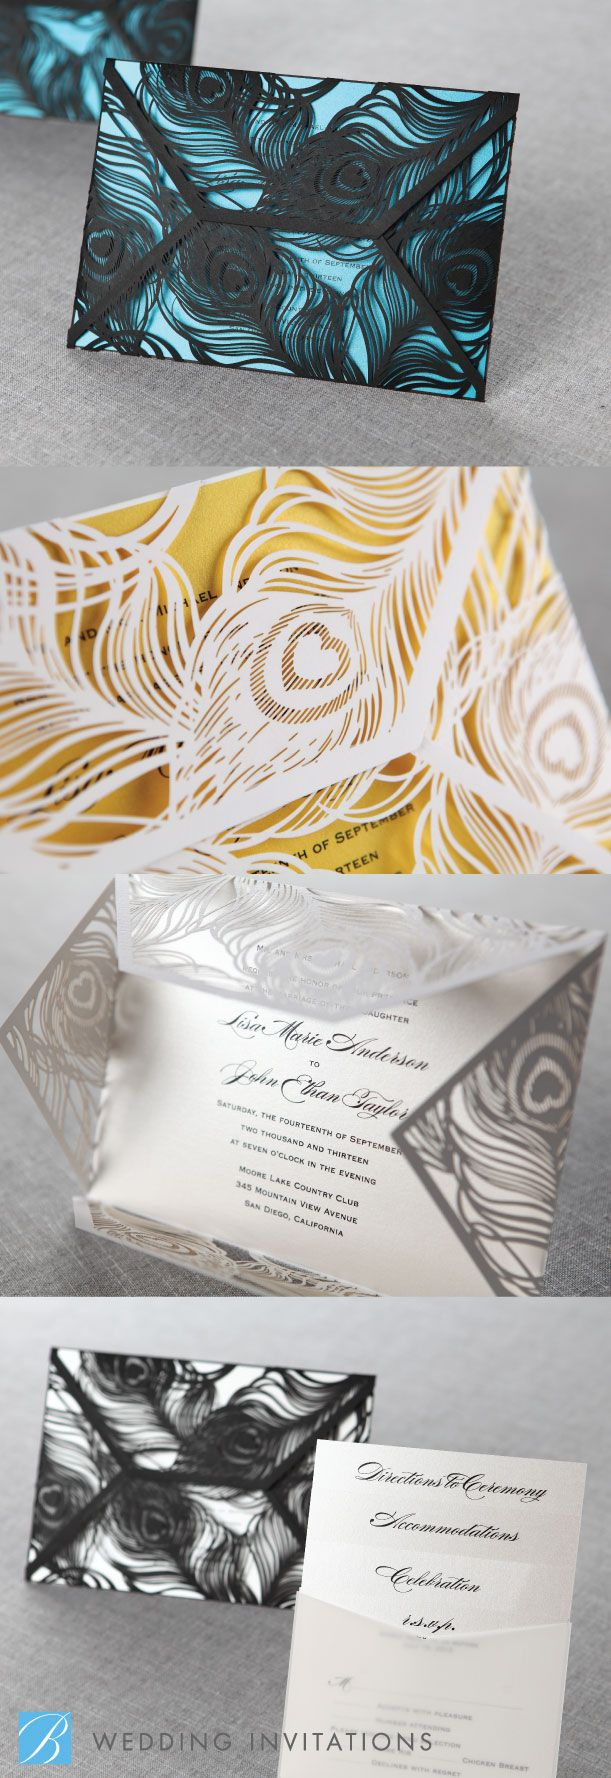 civil wedding invitation card%0A modern designed with feather shape laser cut wedding invitations